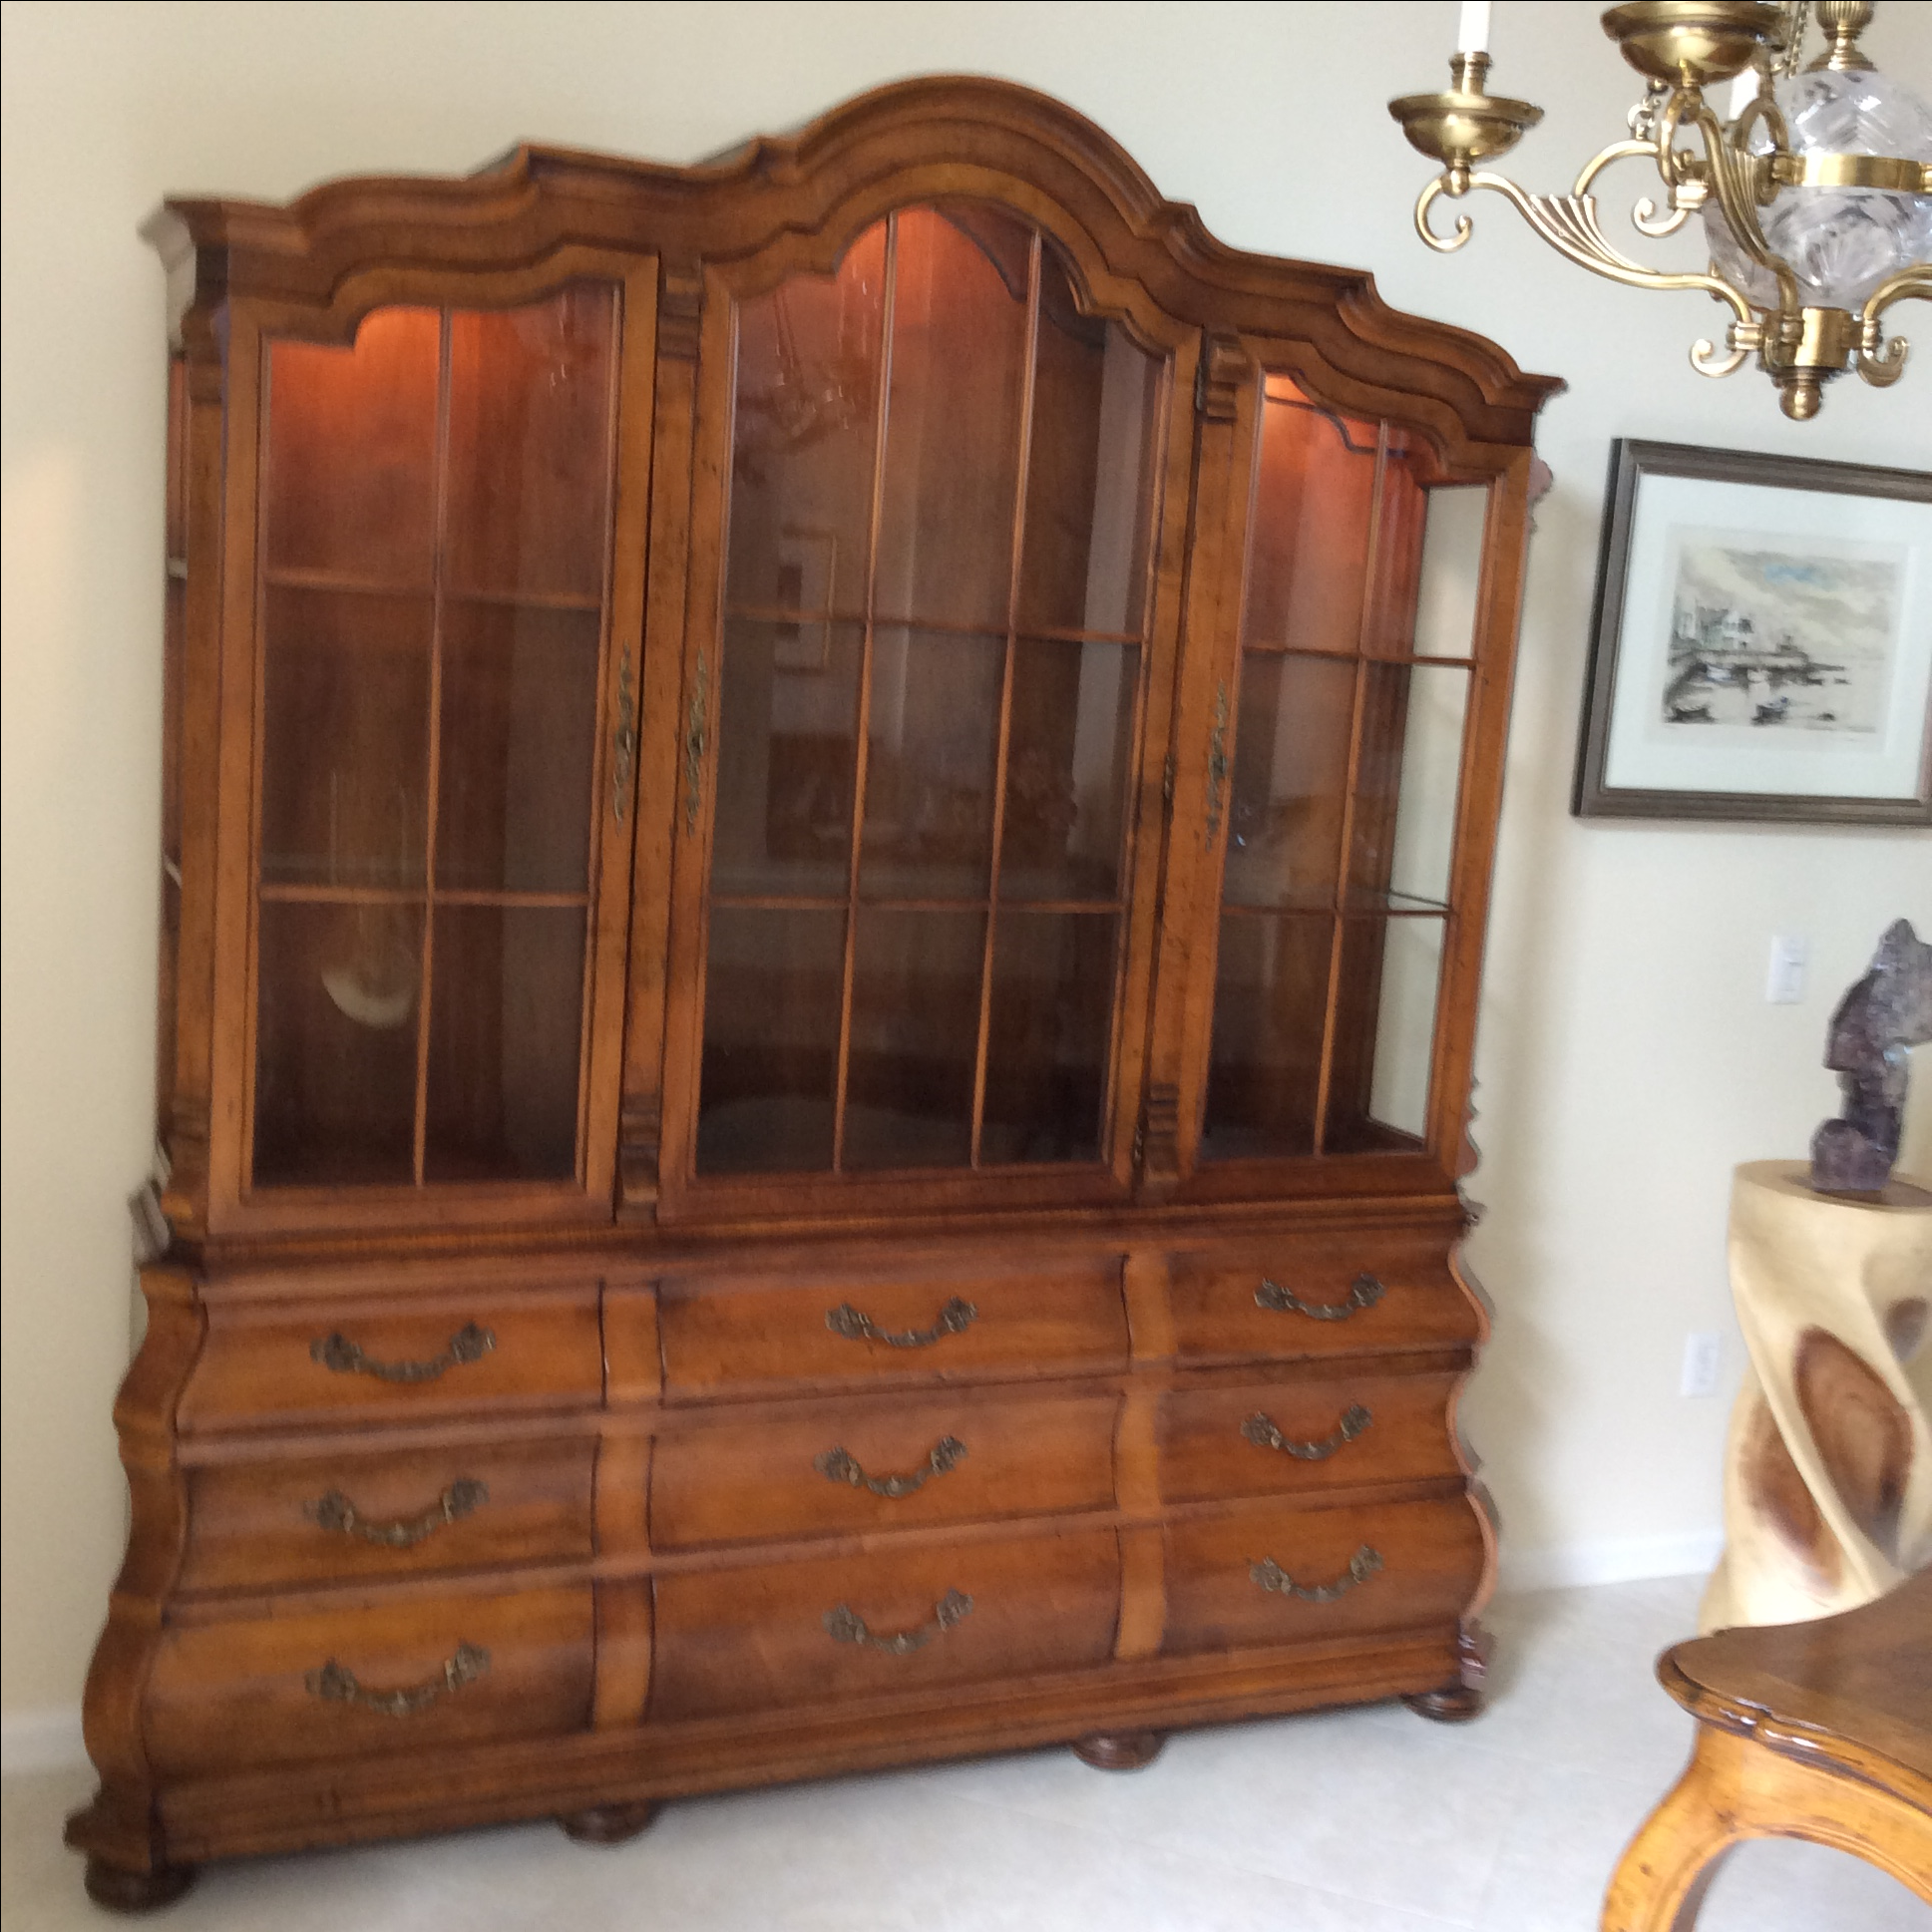 Beau Henredon French Provincial Pecan Display Cabinet   Image 2 Of 8